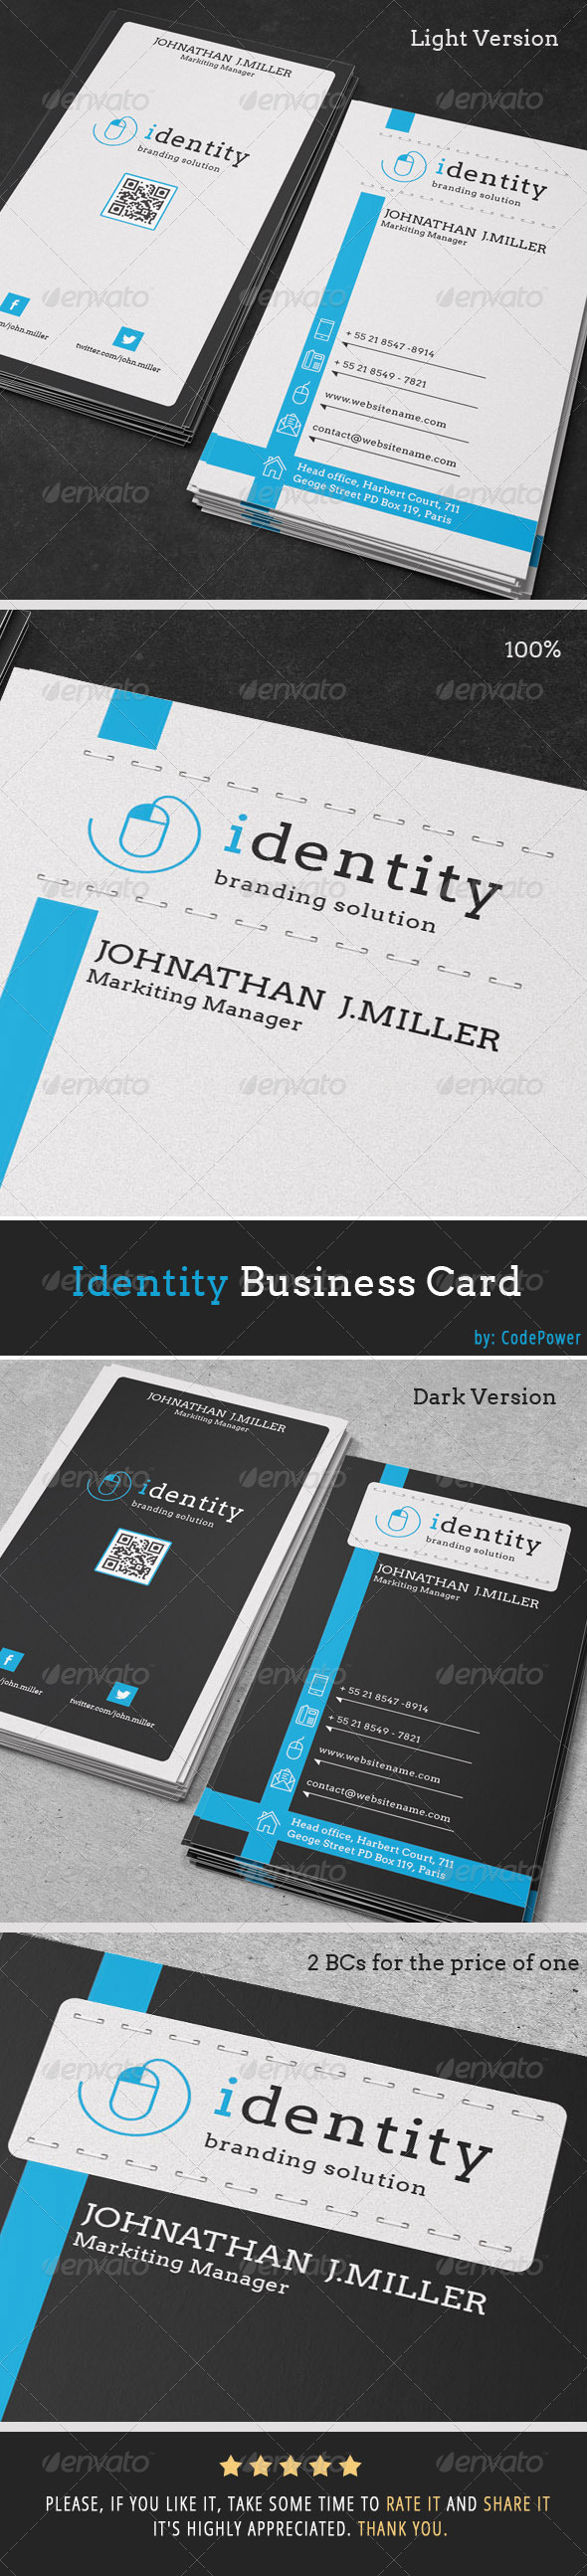 Identity Business Card - Creative Business Cards